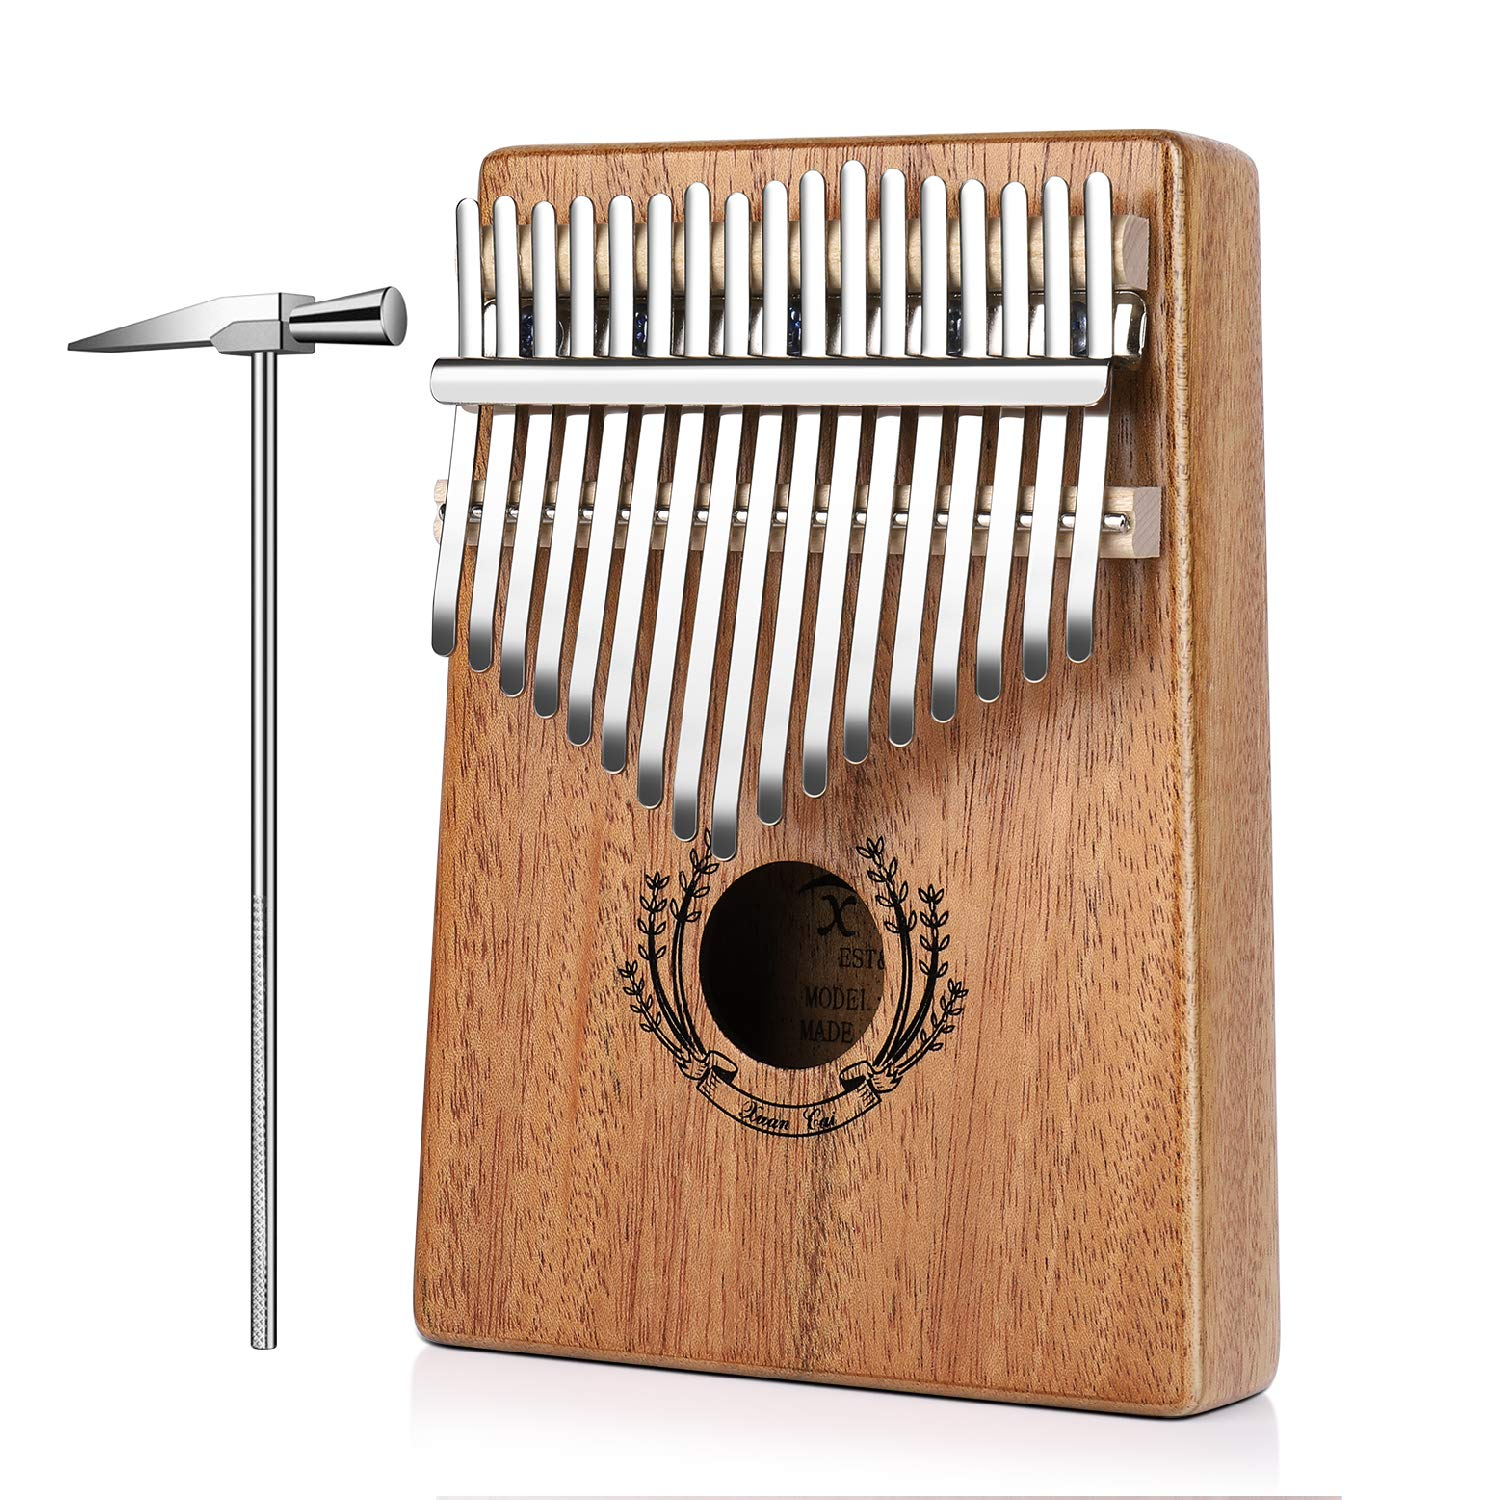 Flexzion Kalimba 17 Keys Thumb Piano, Mbira 17 Tone Finger Piano Portable African Musical Instrument with Musical Scorebook/Learning Booklet, Tune Hammer, Storage Carrying Bag by Flexzion (Image #1)